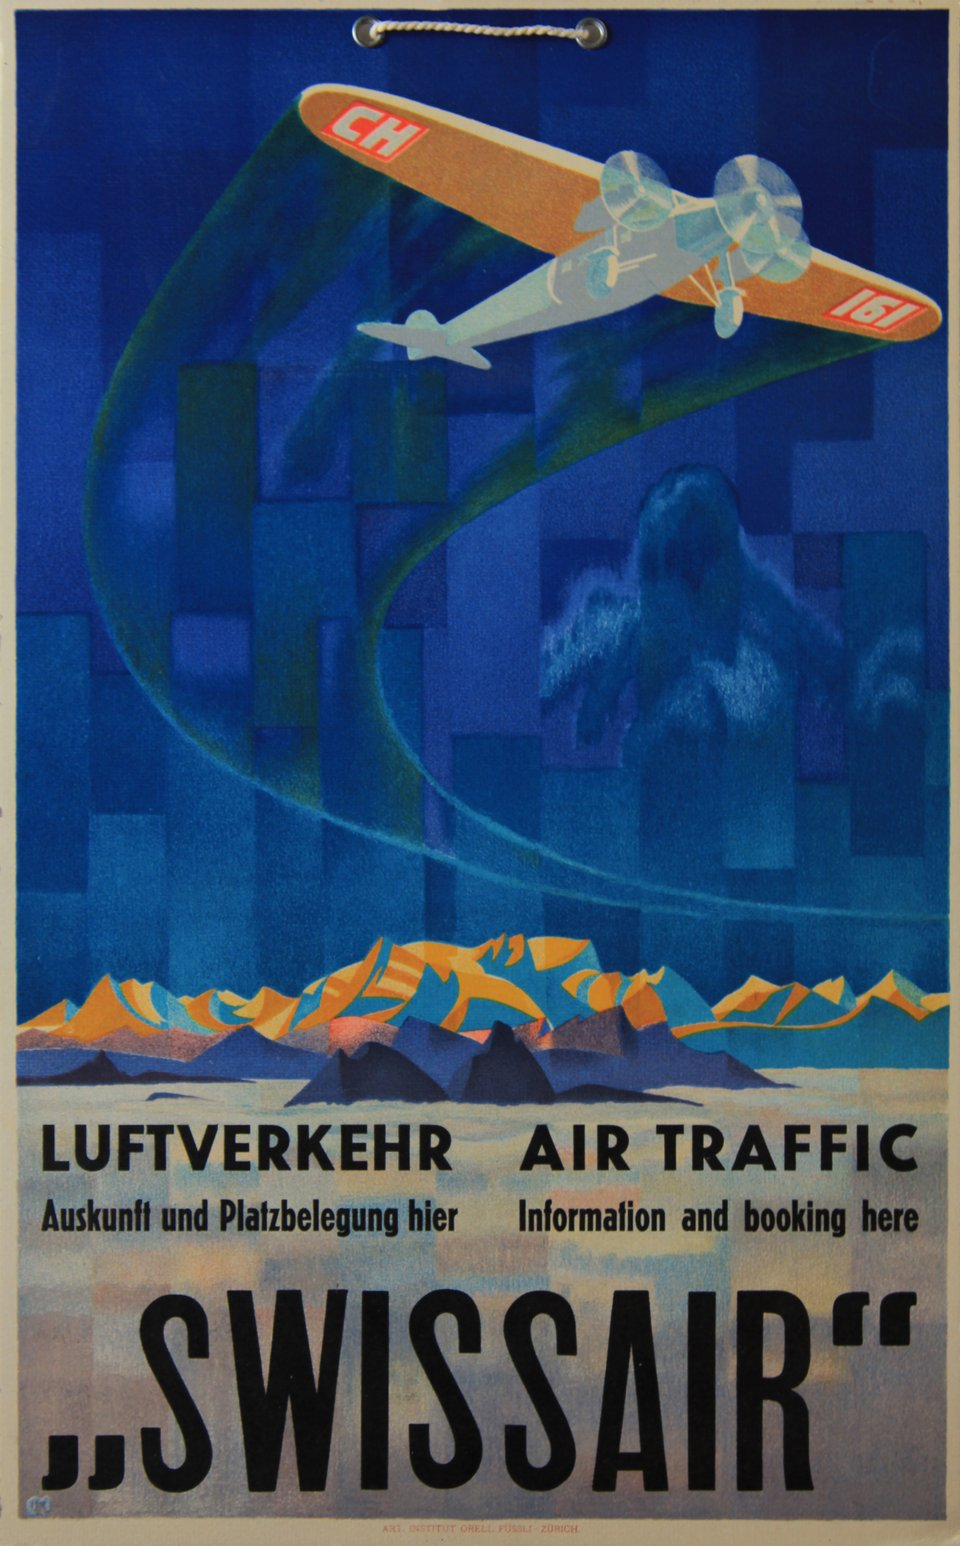 Swissair, Luftverkehr, Air Traffic – Affiche ancienne – Karl MOOS – 1933